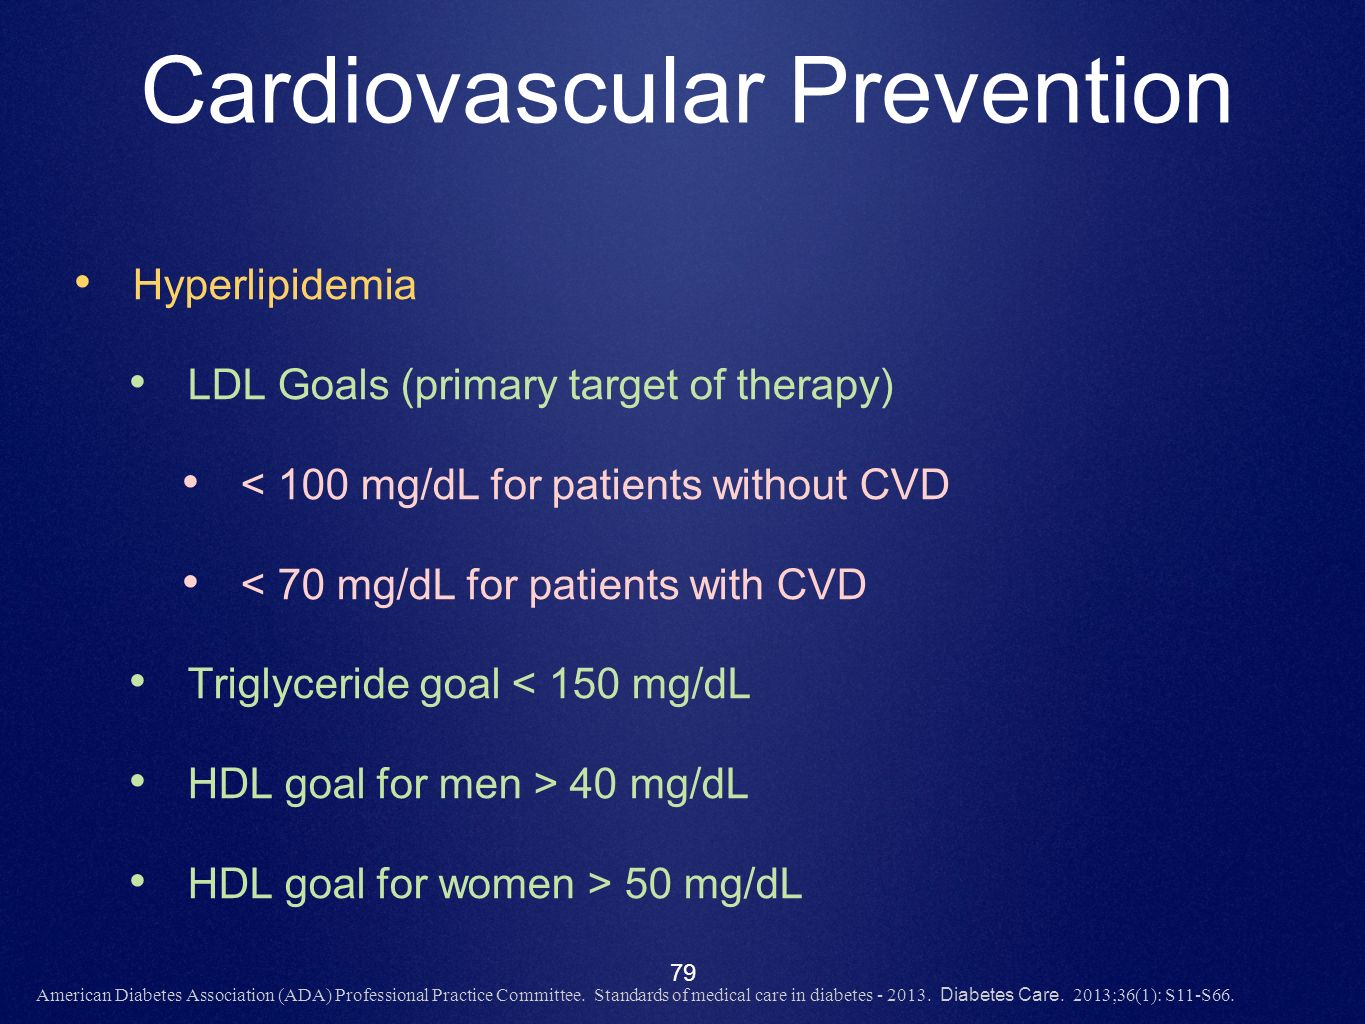 79 Cardiovascular Prevention Hyperlipidemia LDL Goals (primary target of therapy) < 100 mg/dL for patients without CVD < 70 mg/dL for patients with CV